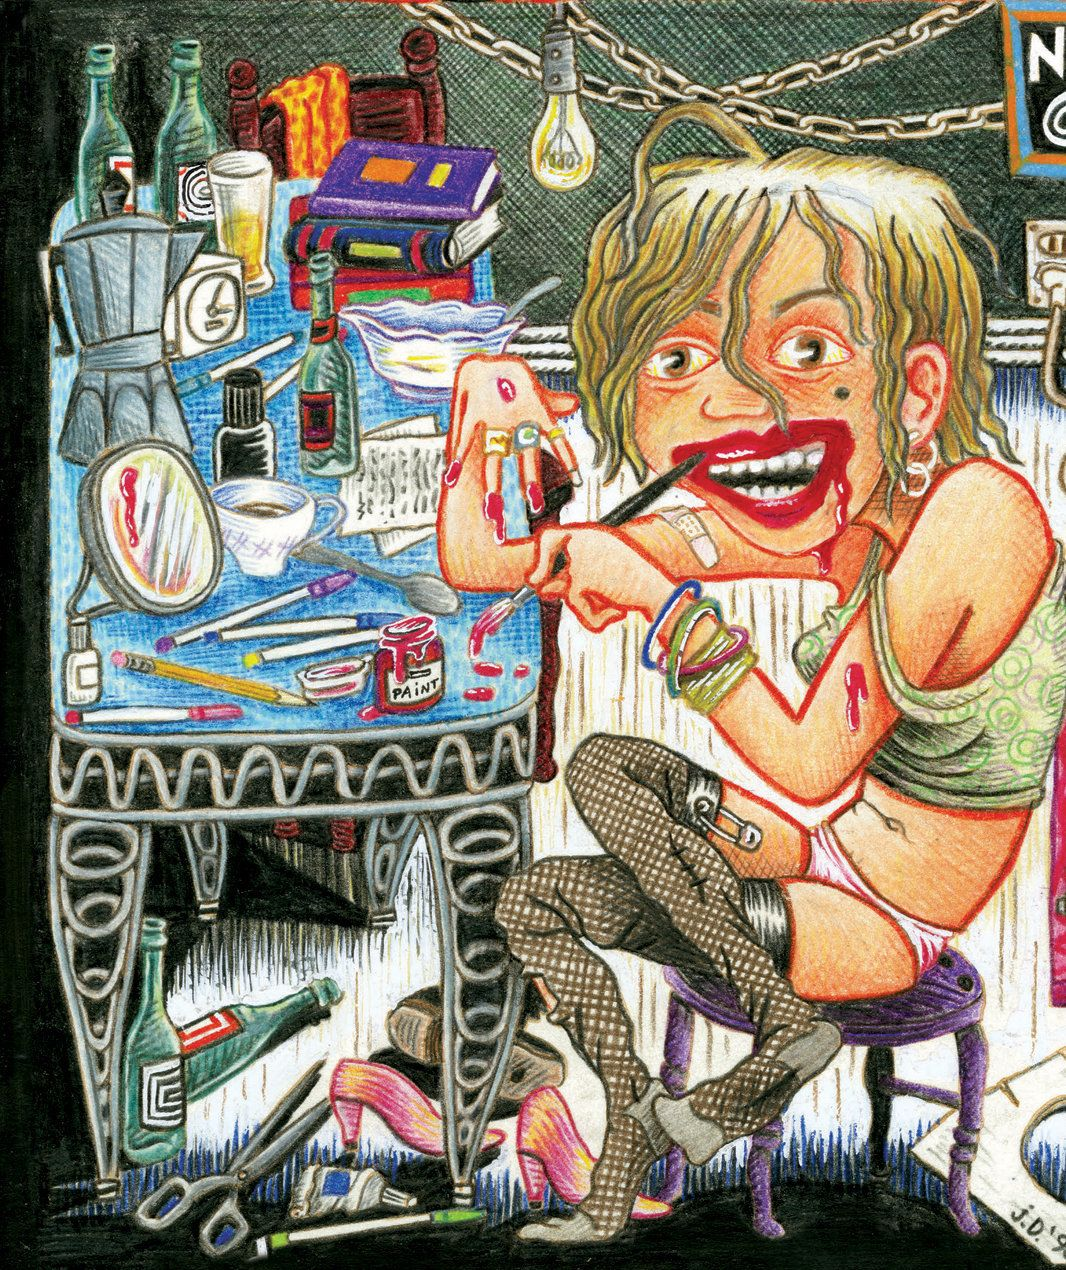 When she started drawing comics,Julie Doucet didn't think anyone would ever see her work,...